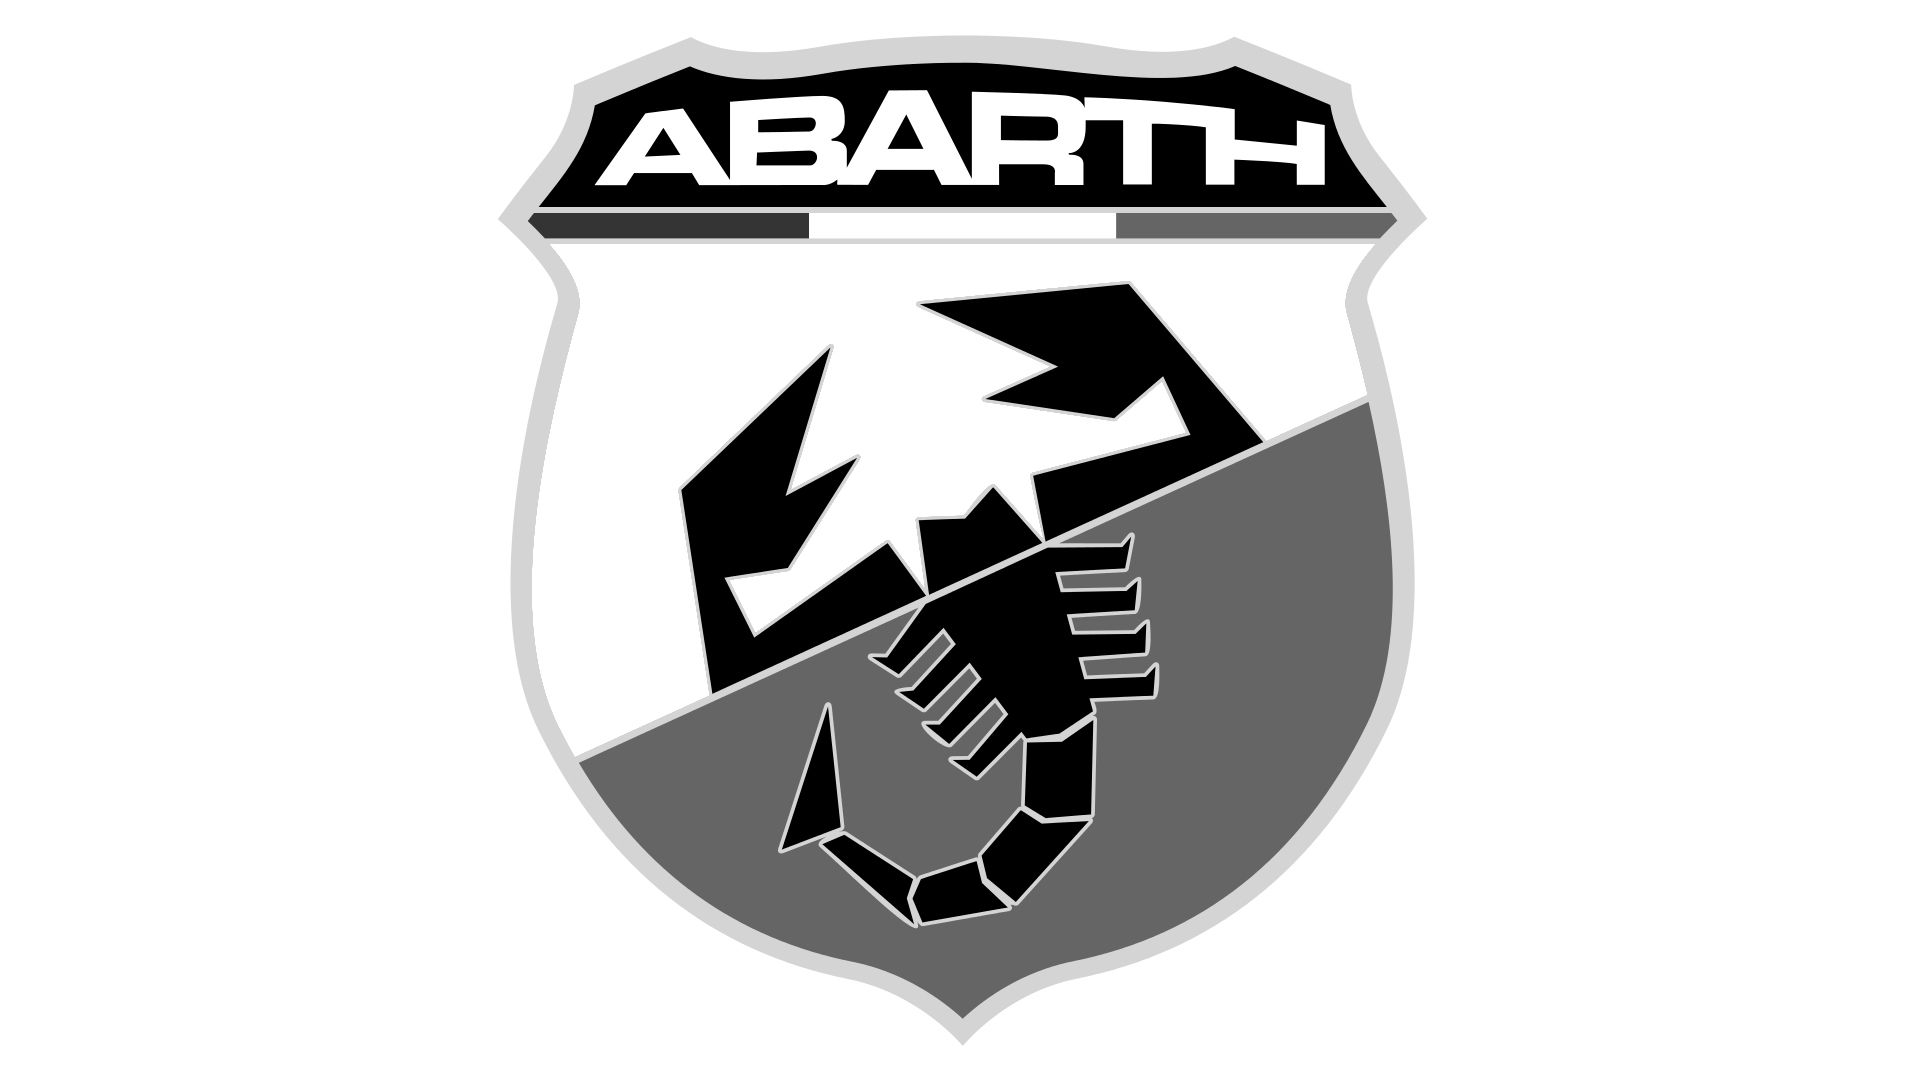 Abarth Logo - Abarth Logo Meaning and History, latest models | World Cars Brands